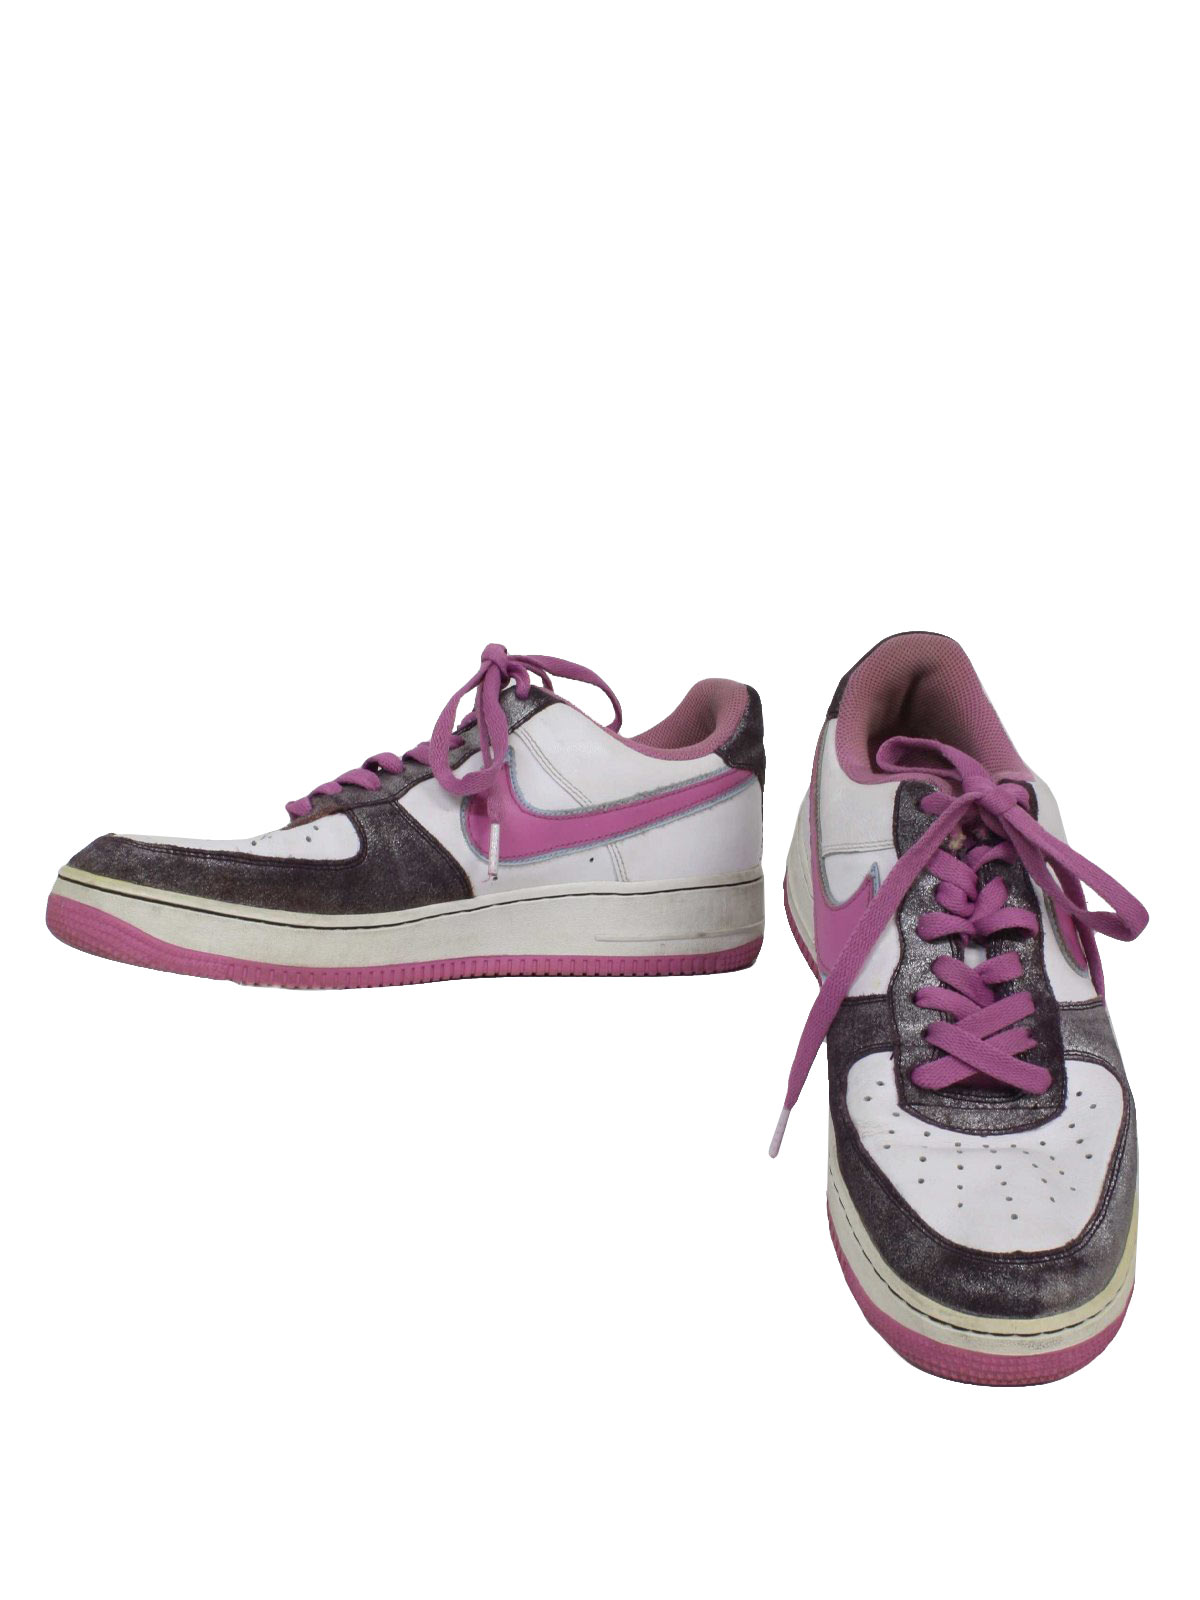 1990s Nike Air Force xxv Shoes: 90s -Nike Air Force xxv- Womens off white,  shaded shimmery violet and light blue trim along swoosh old school style  flat ...